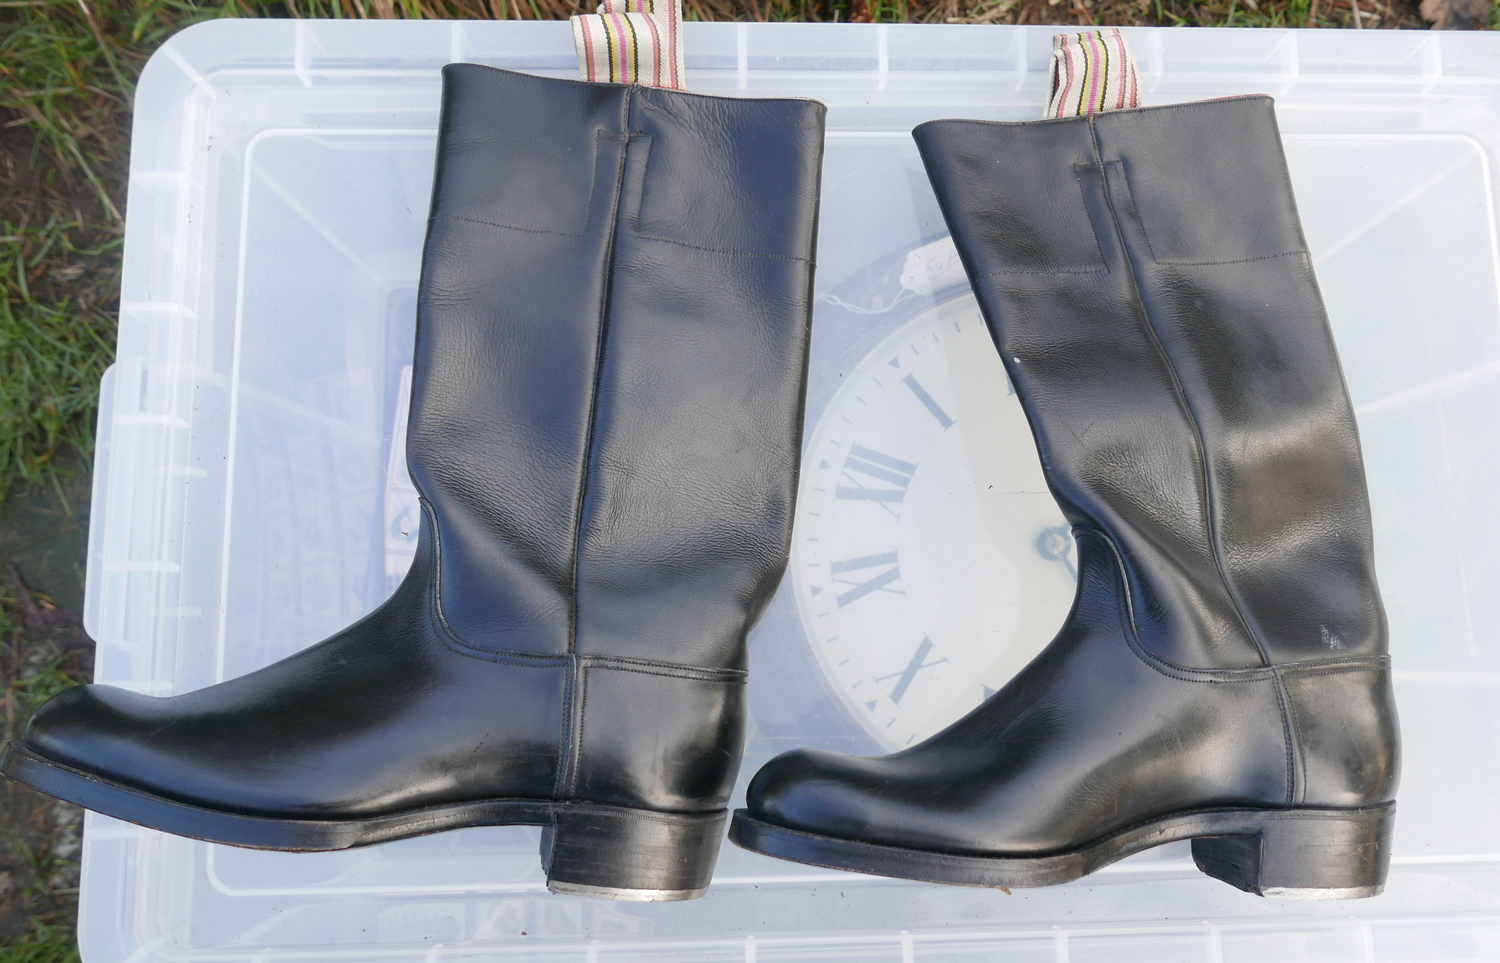 Lot 50B - Pair of Vintage Military Boots size 6.